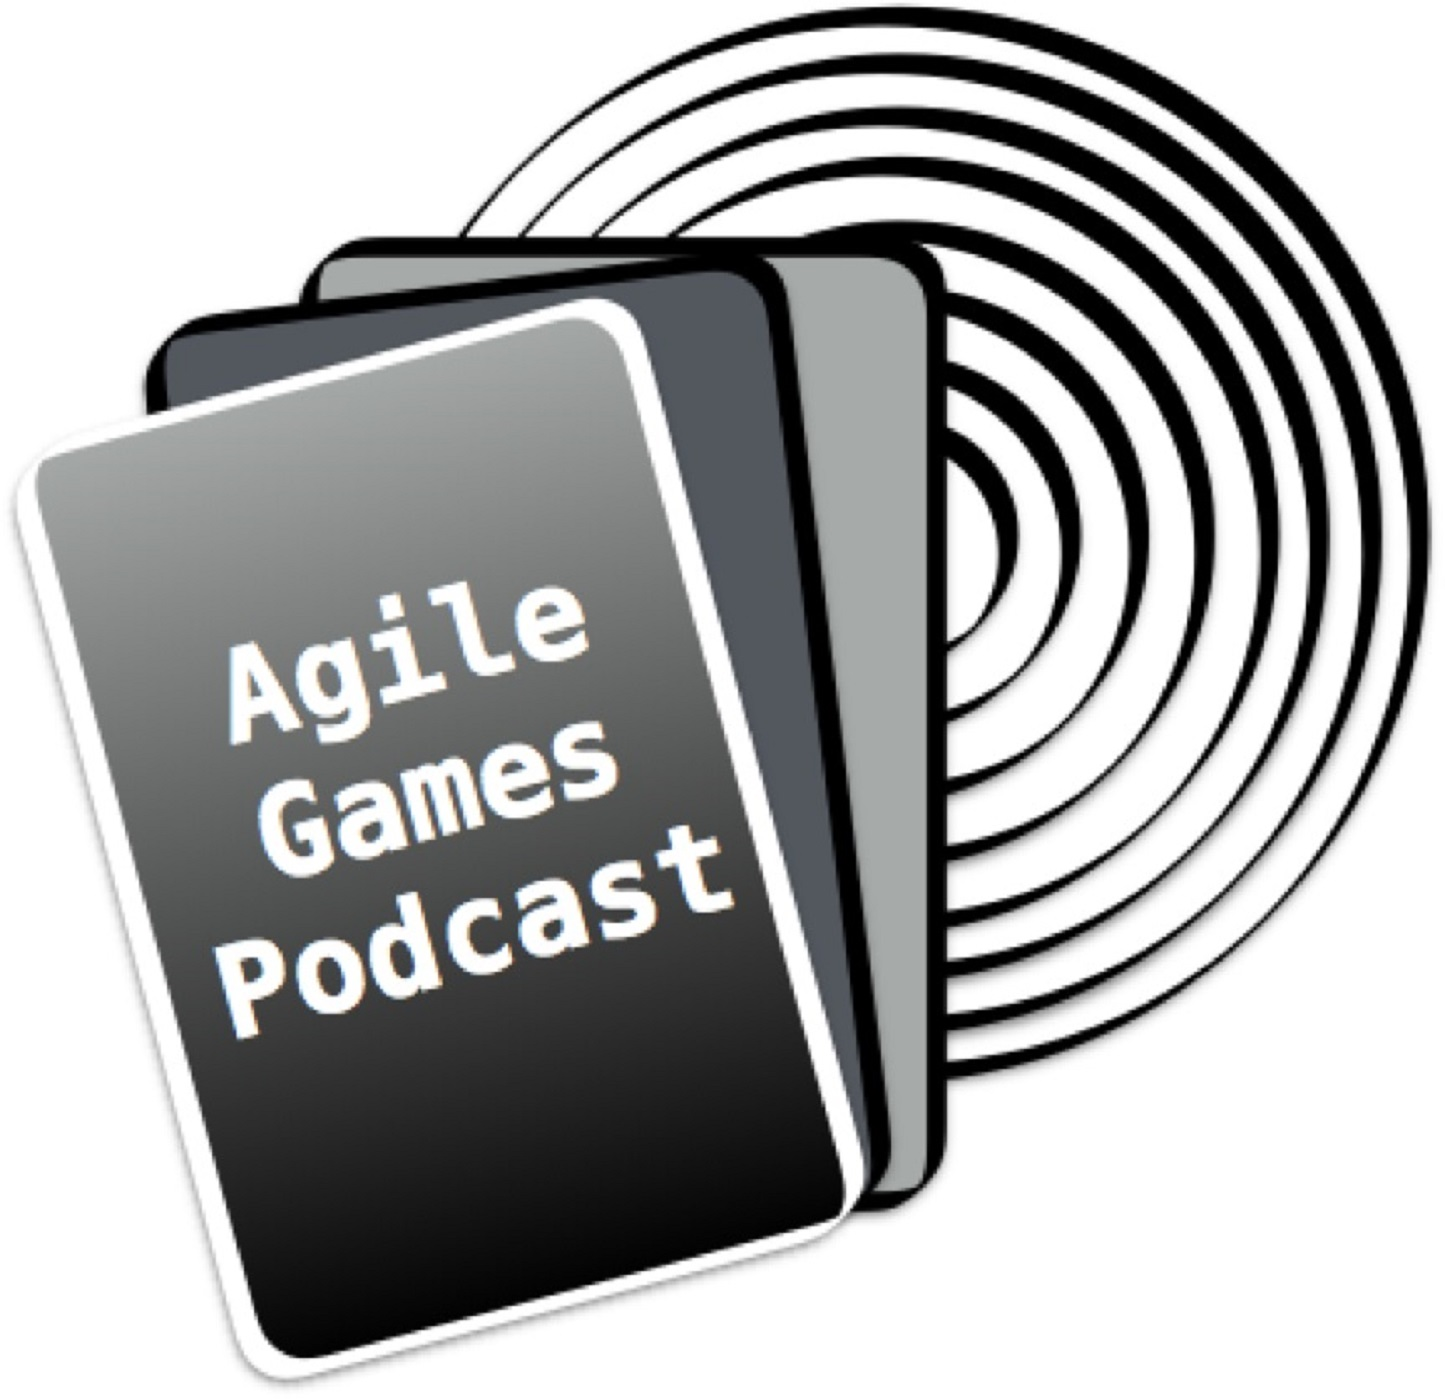 Agile Games Podcast